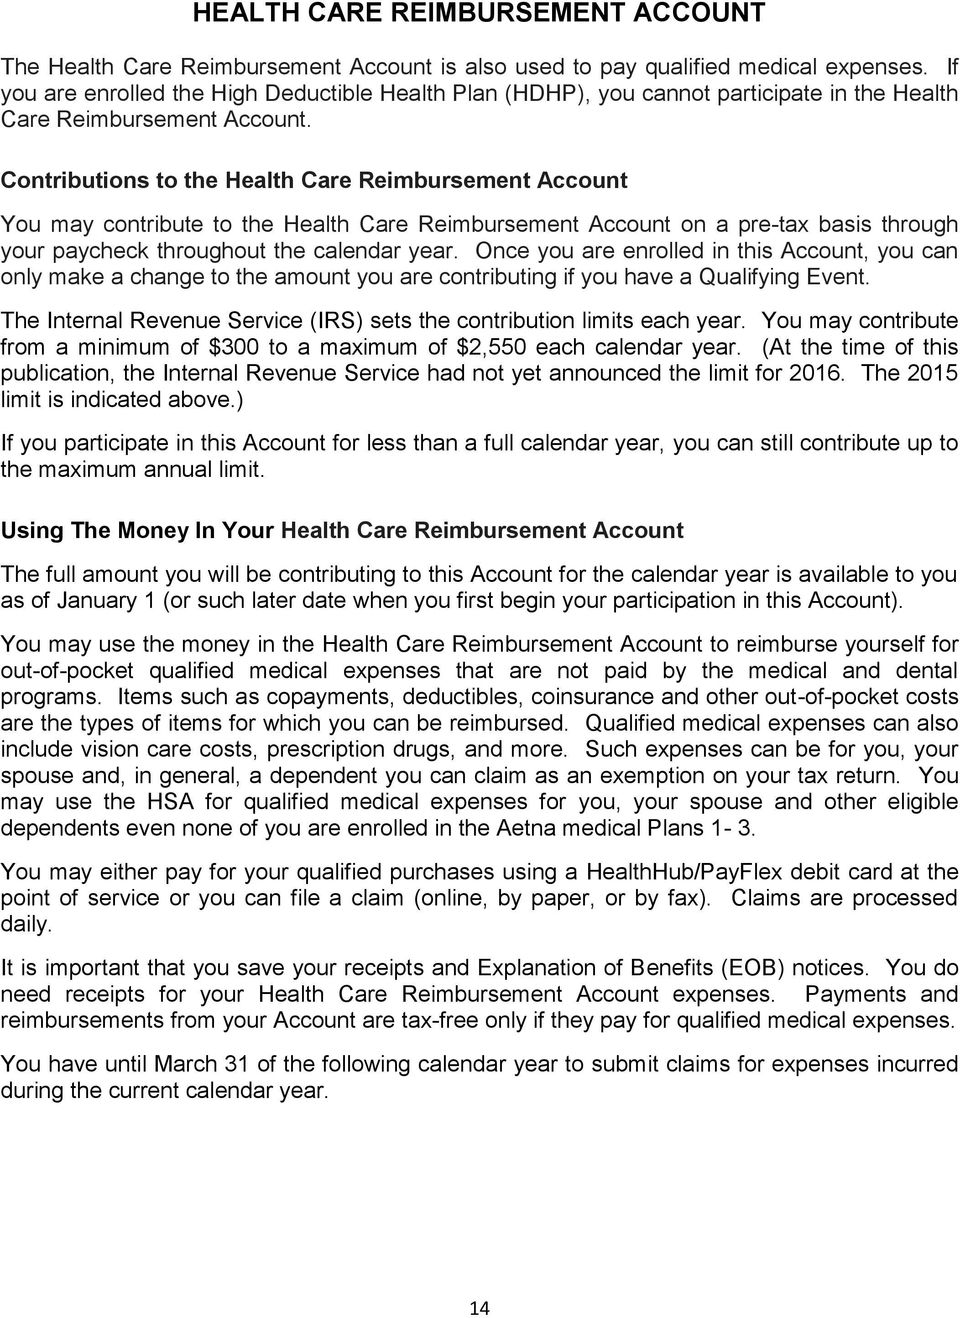 Contributions to the Health Care Reimbursement Account You may contribute to the Health Care Reimbursement Account on a pre-tax basis through your paycheck throughout the calendar year.